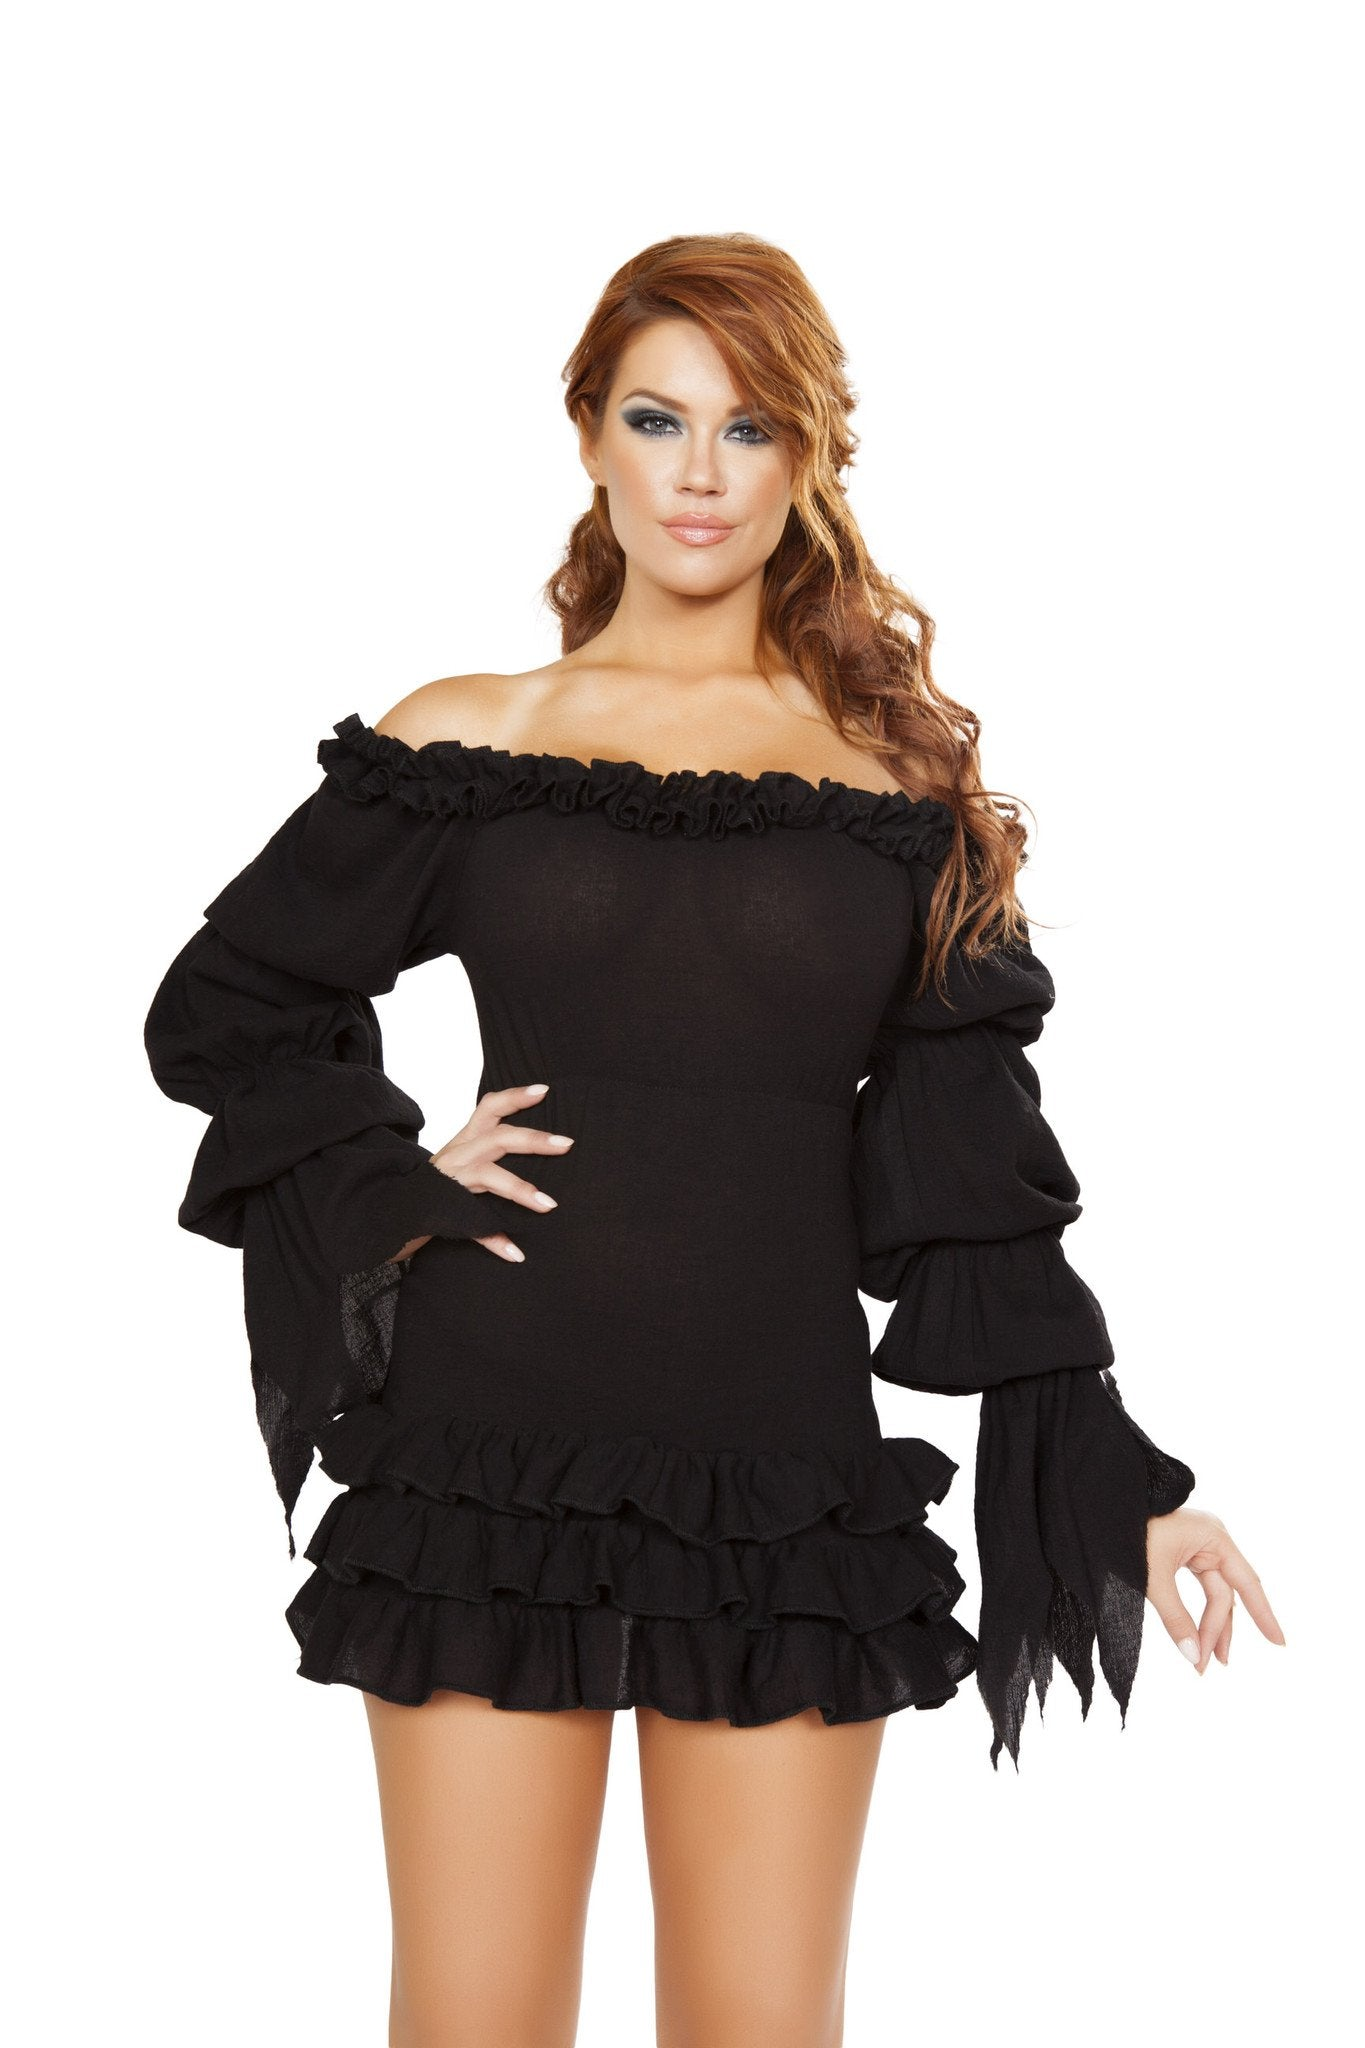 Buy 4770 - Ruffled Pirate Dress with Sleeves & Multi Layered Skirt from Rave Fix for $22.50 with Same Day Shipping Designed by Roma Costume 4770-Blk-L